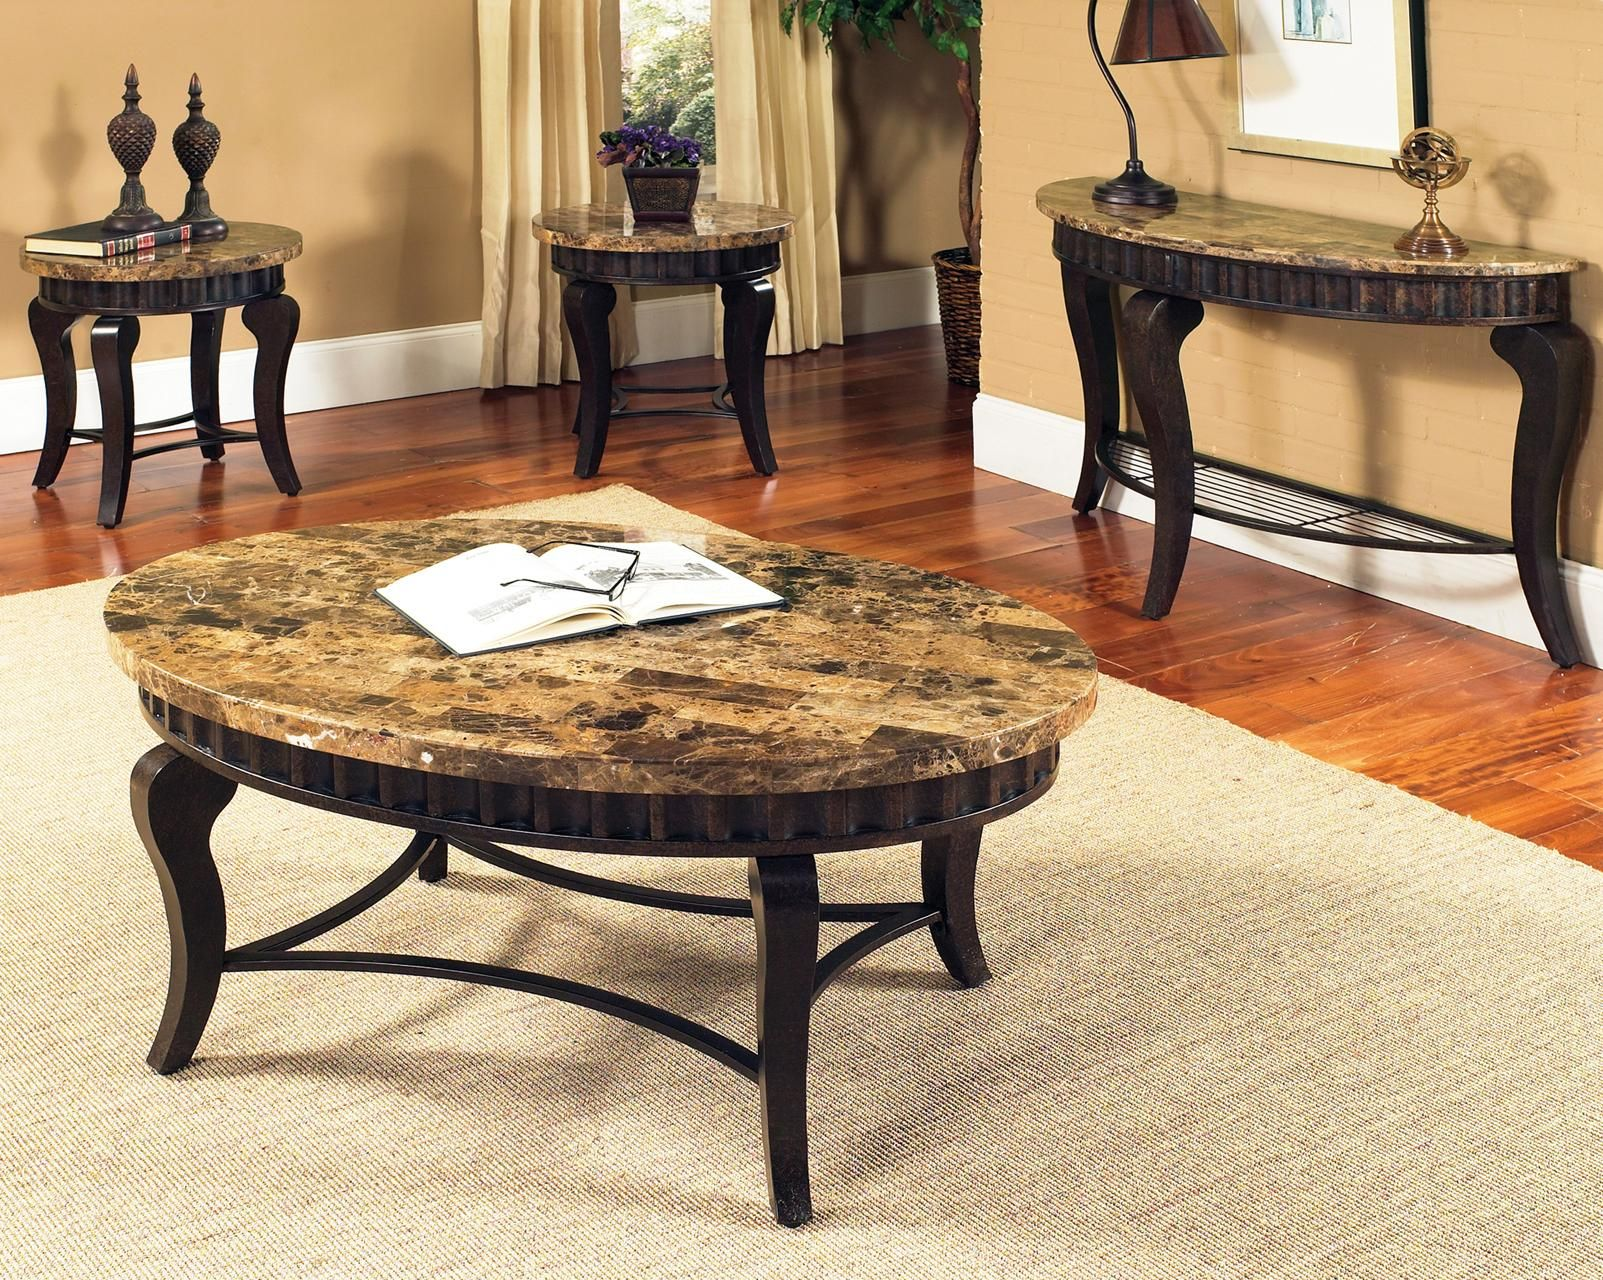 Decorating Coffee Table Coffee Table And Side Table Set 3 Piece Coffee Table Set [ 1280 x 1603 Pixel ]